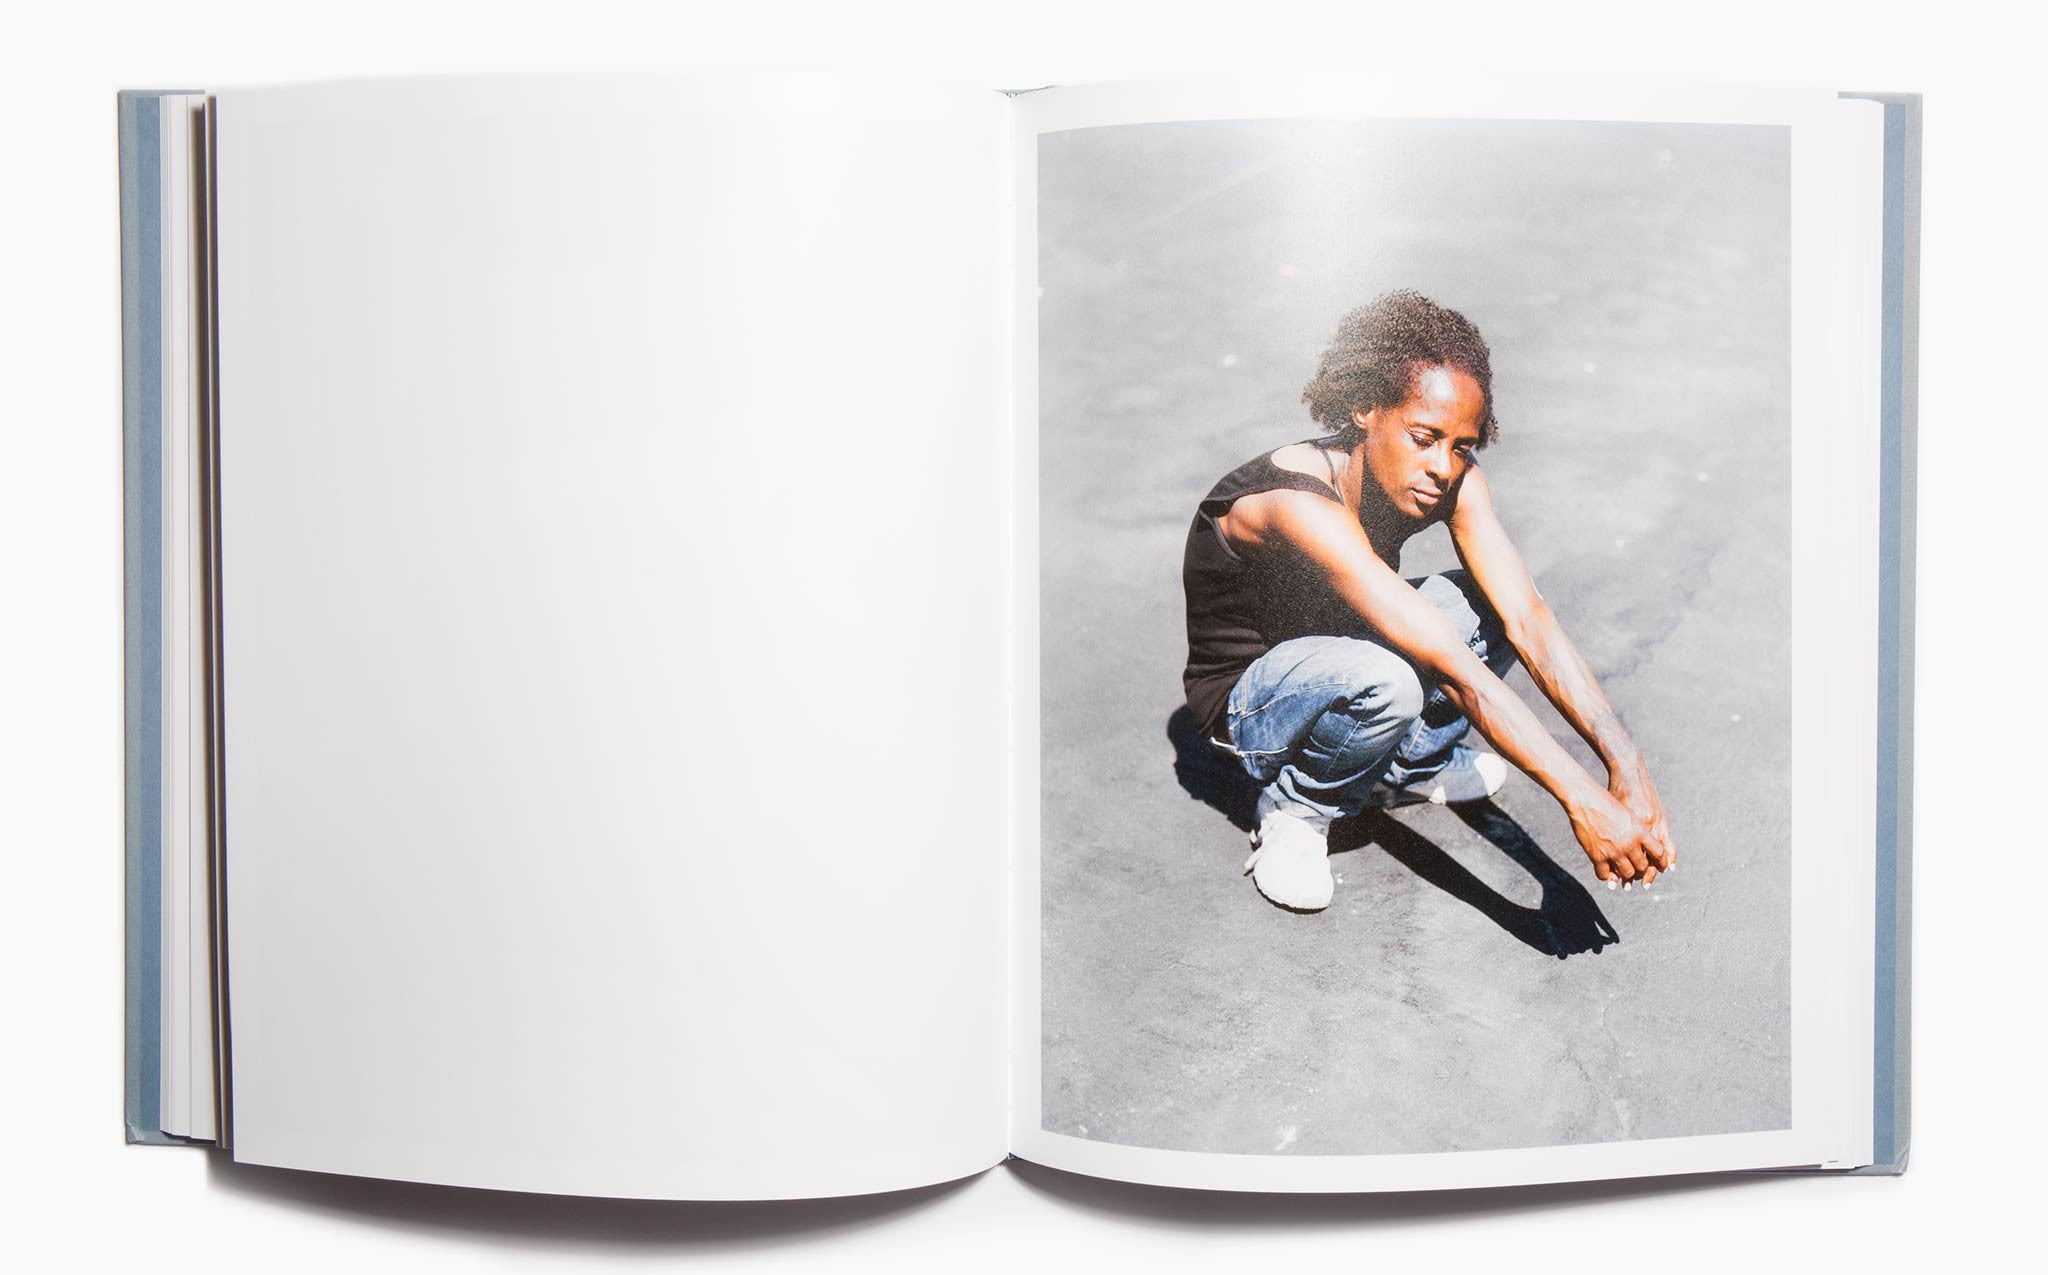 ZZYZX – Gregory Halpern (First Edition, First Printing)